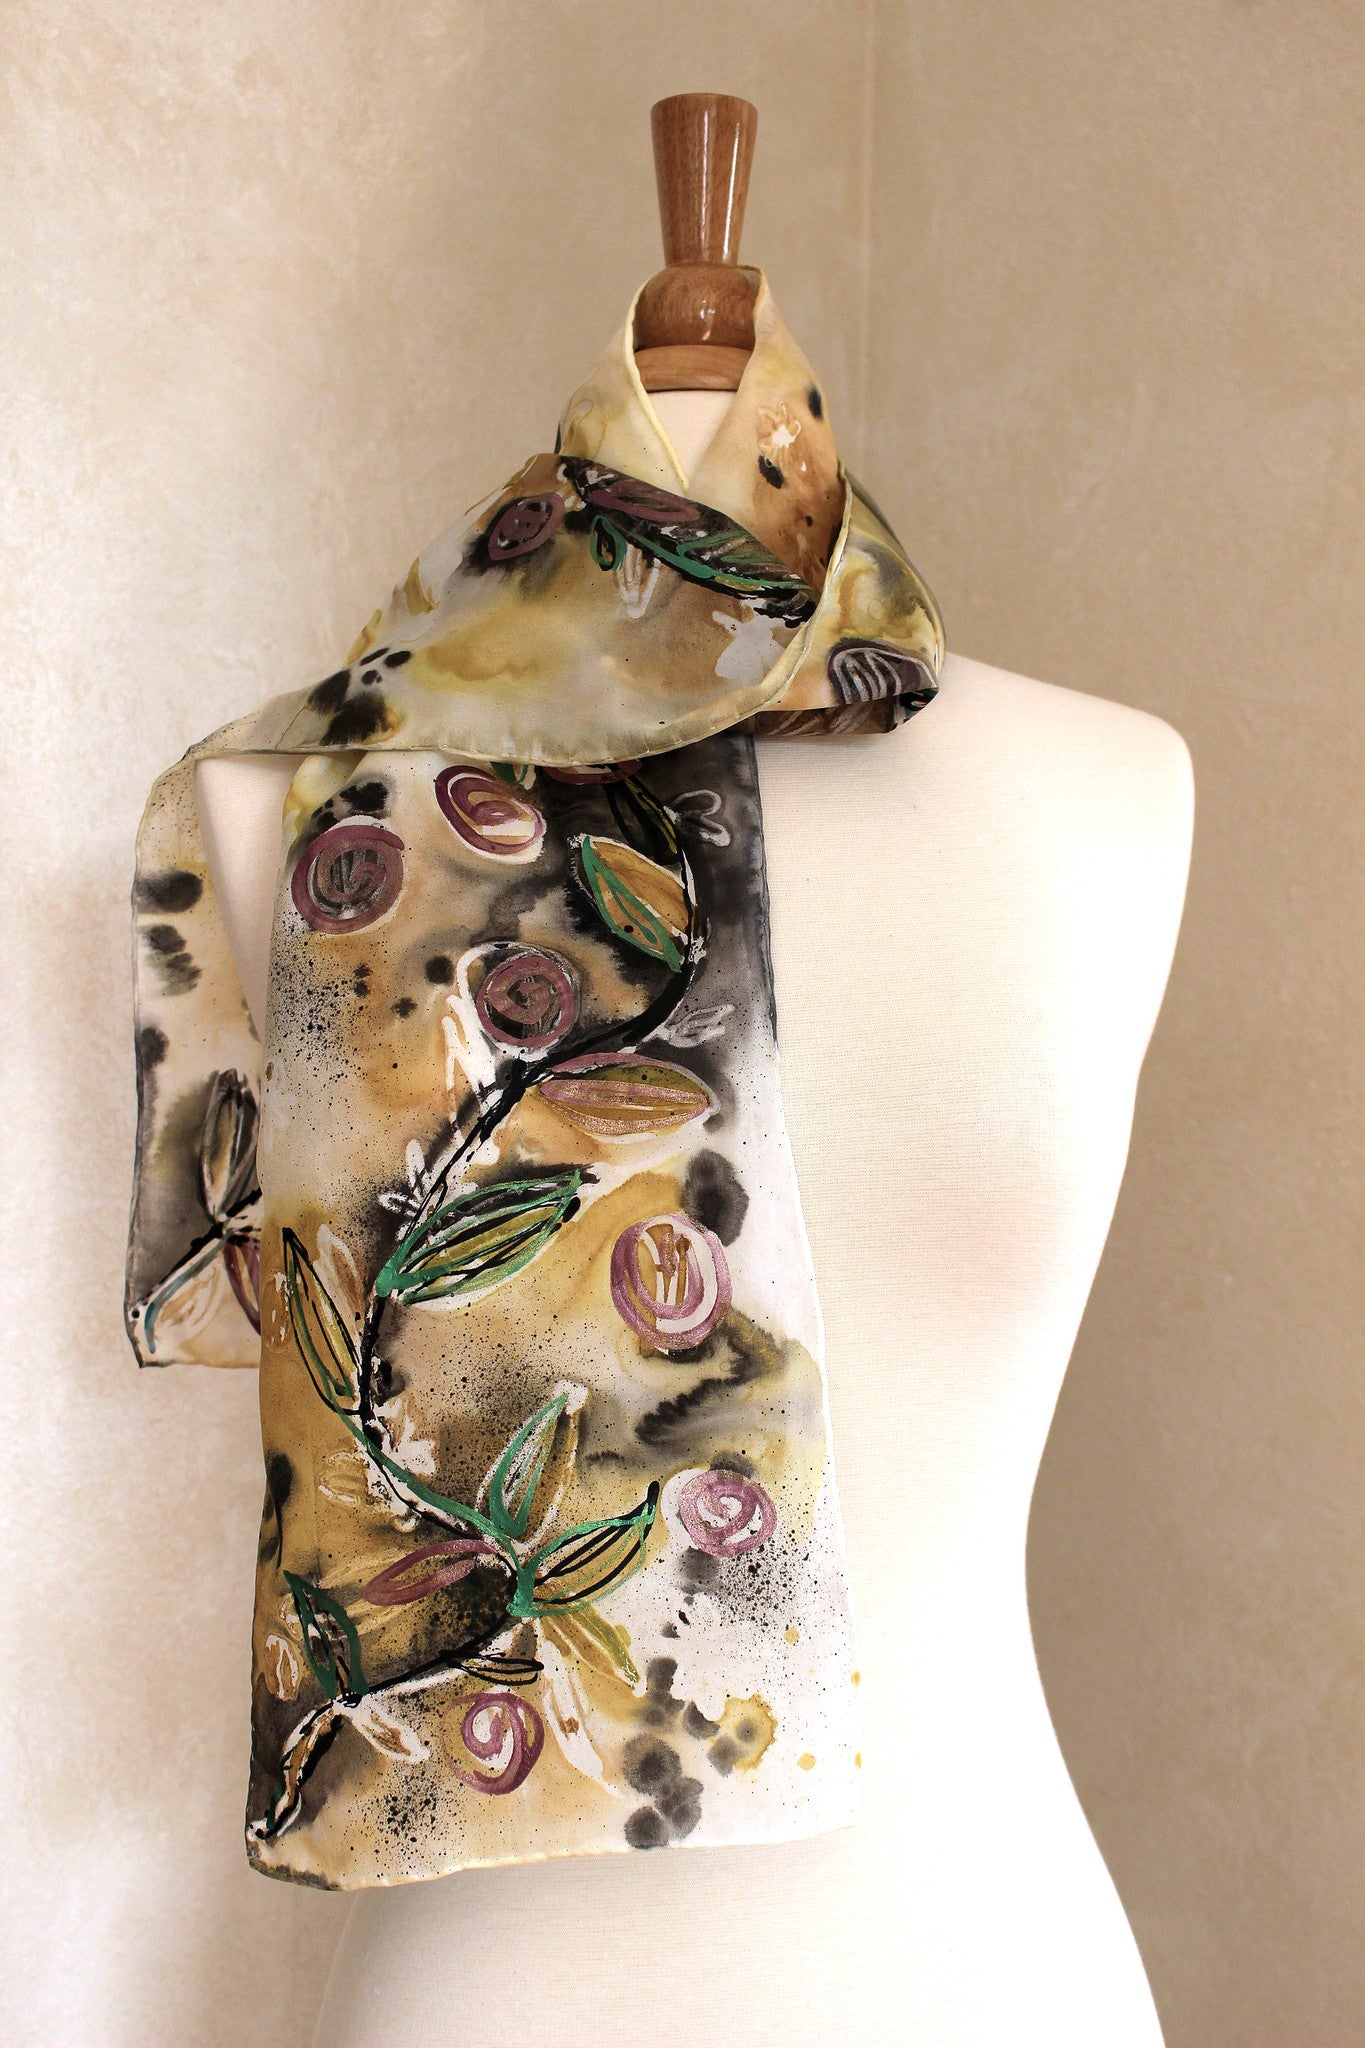 Floral Fantasy - Gold, Metallic Green, Metallic Purple and Black